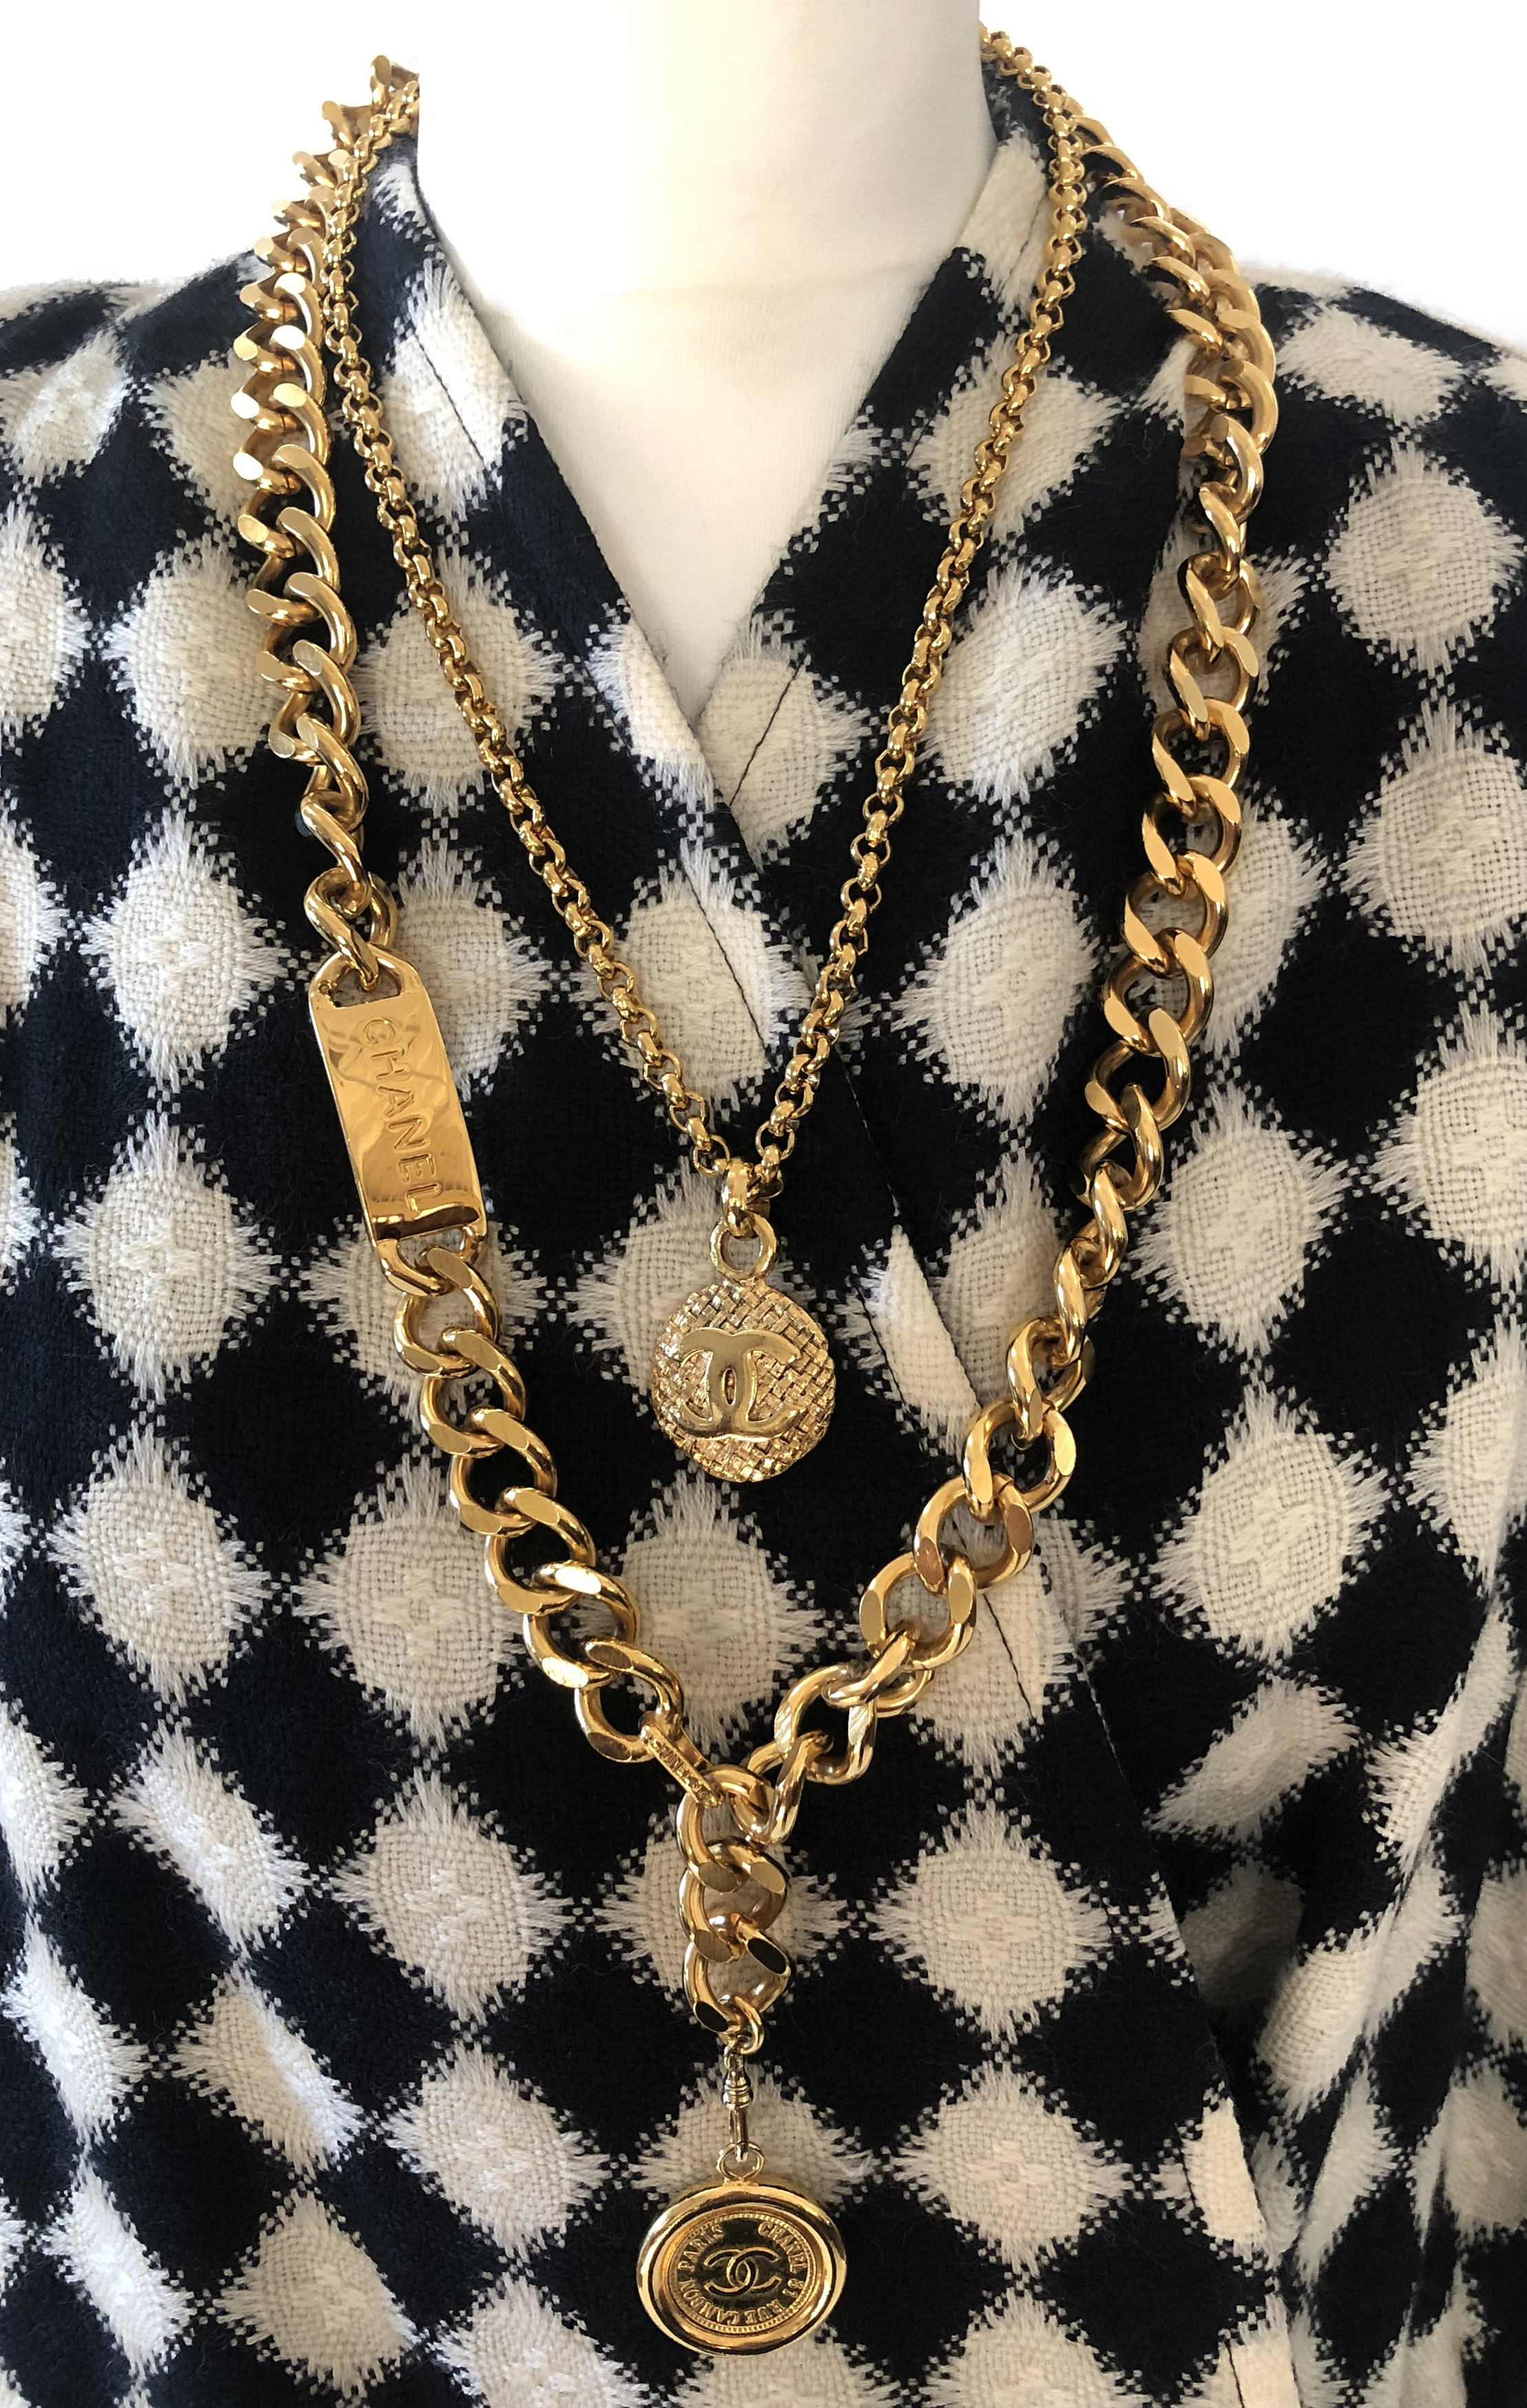 Chanel necklaces and Karl Lagerfeld coat